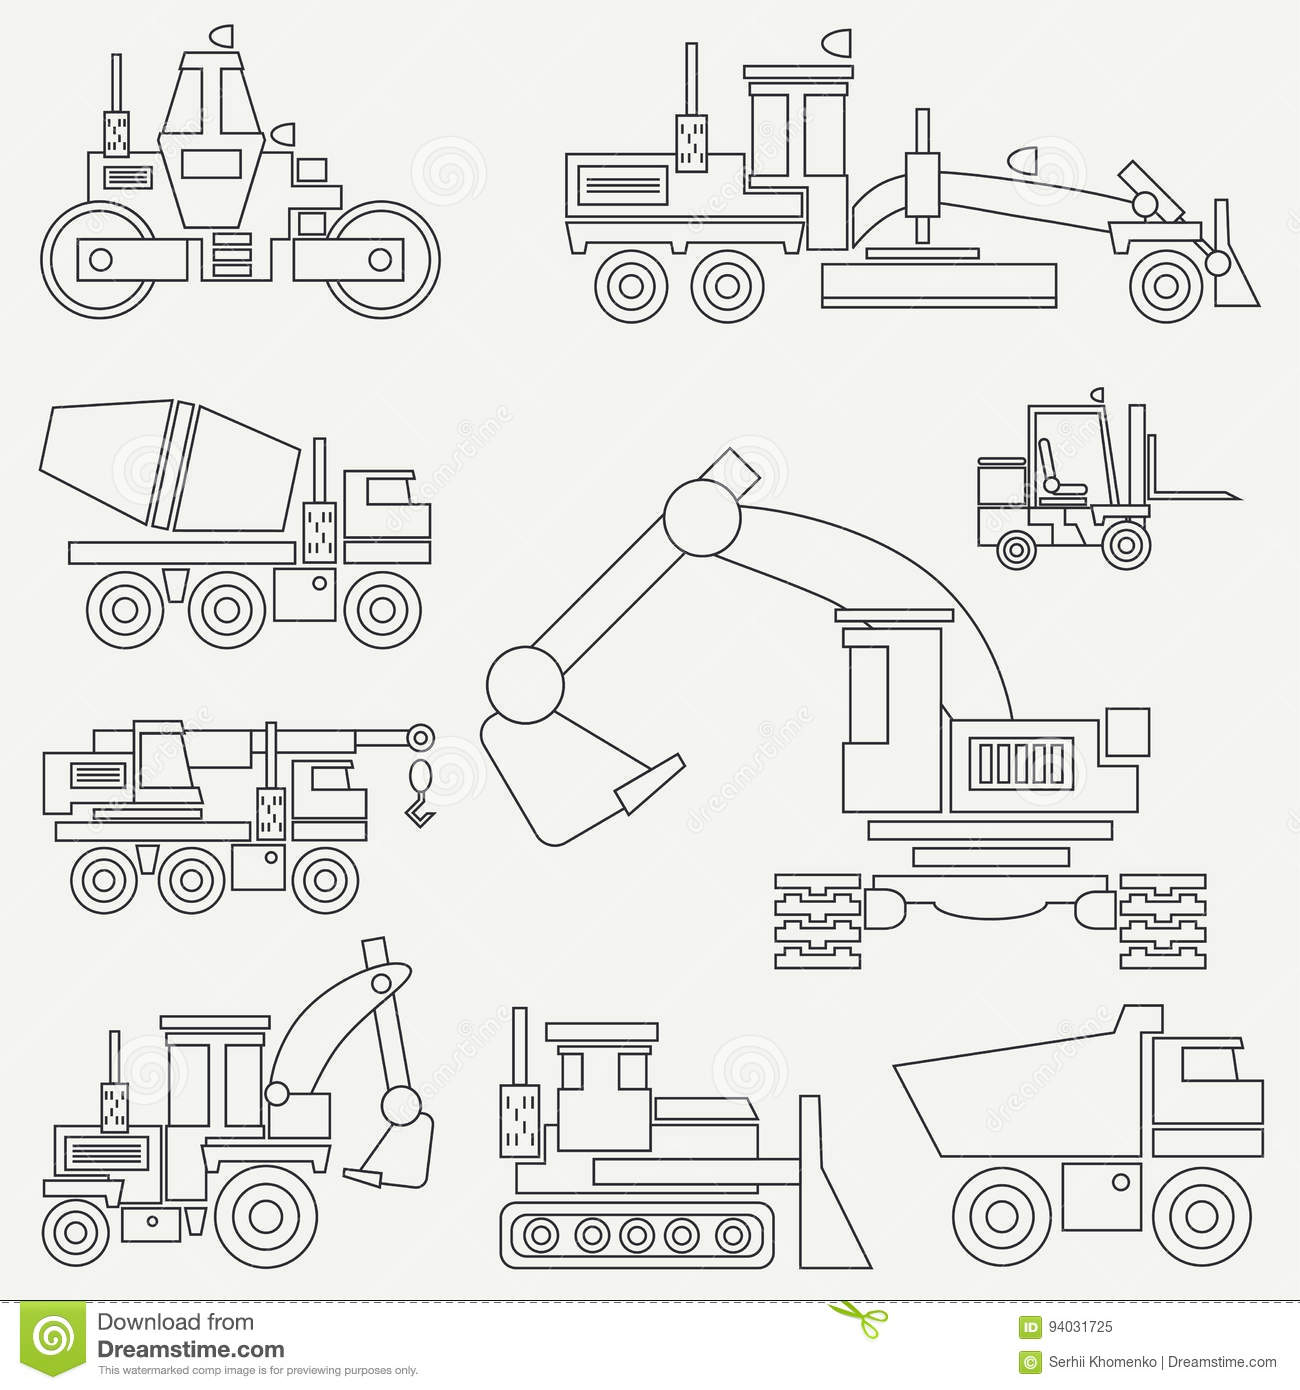 Line flat vector icon construction machinery set with bulldozer, crane, truck, excavator, forklift, cement mixer